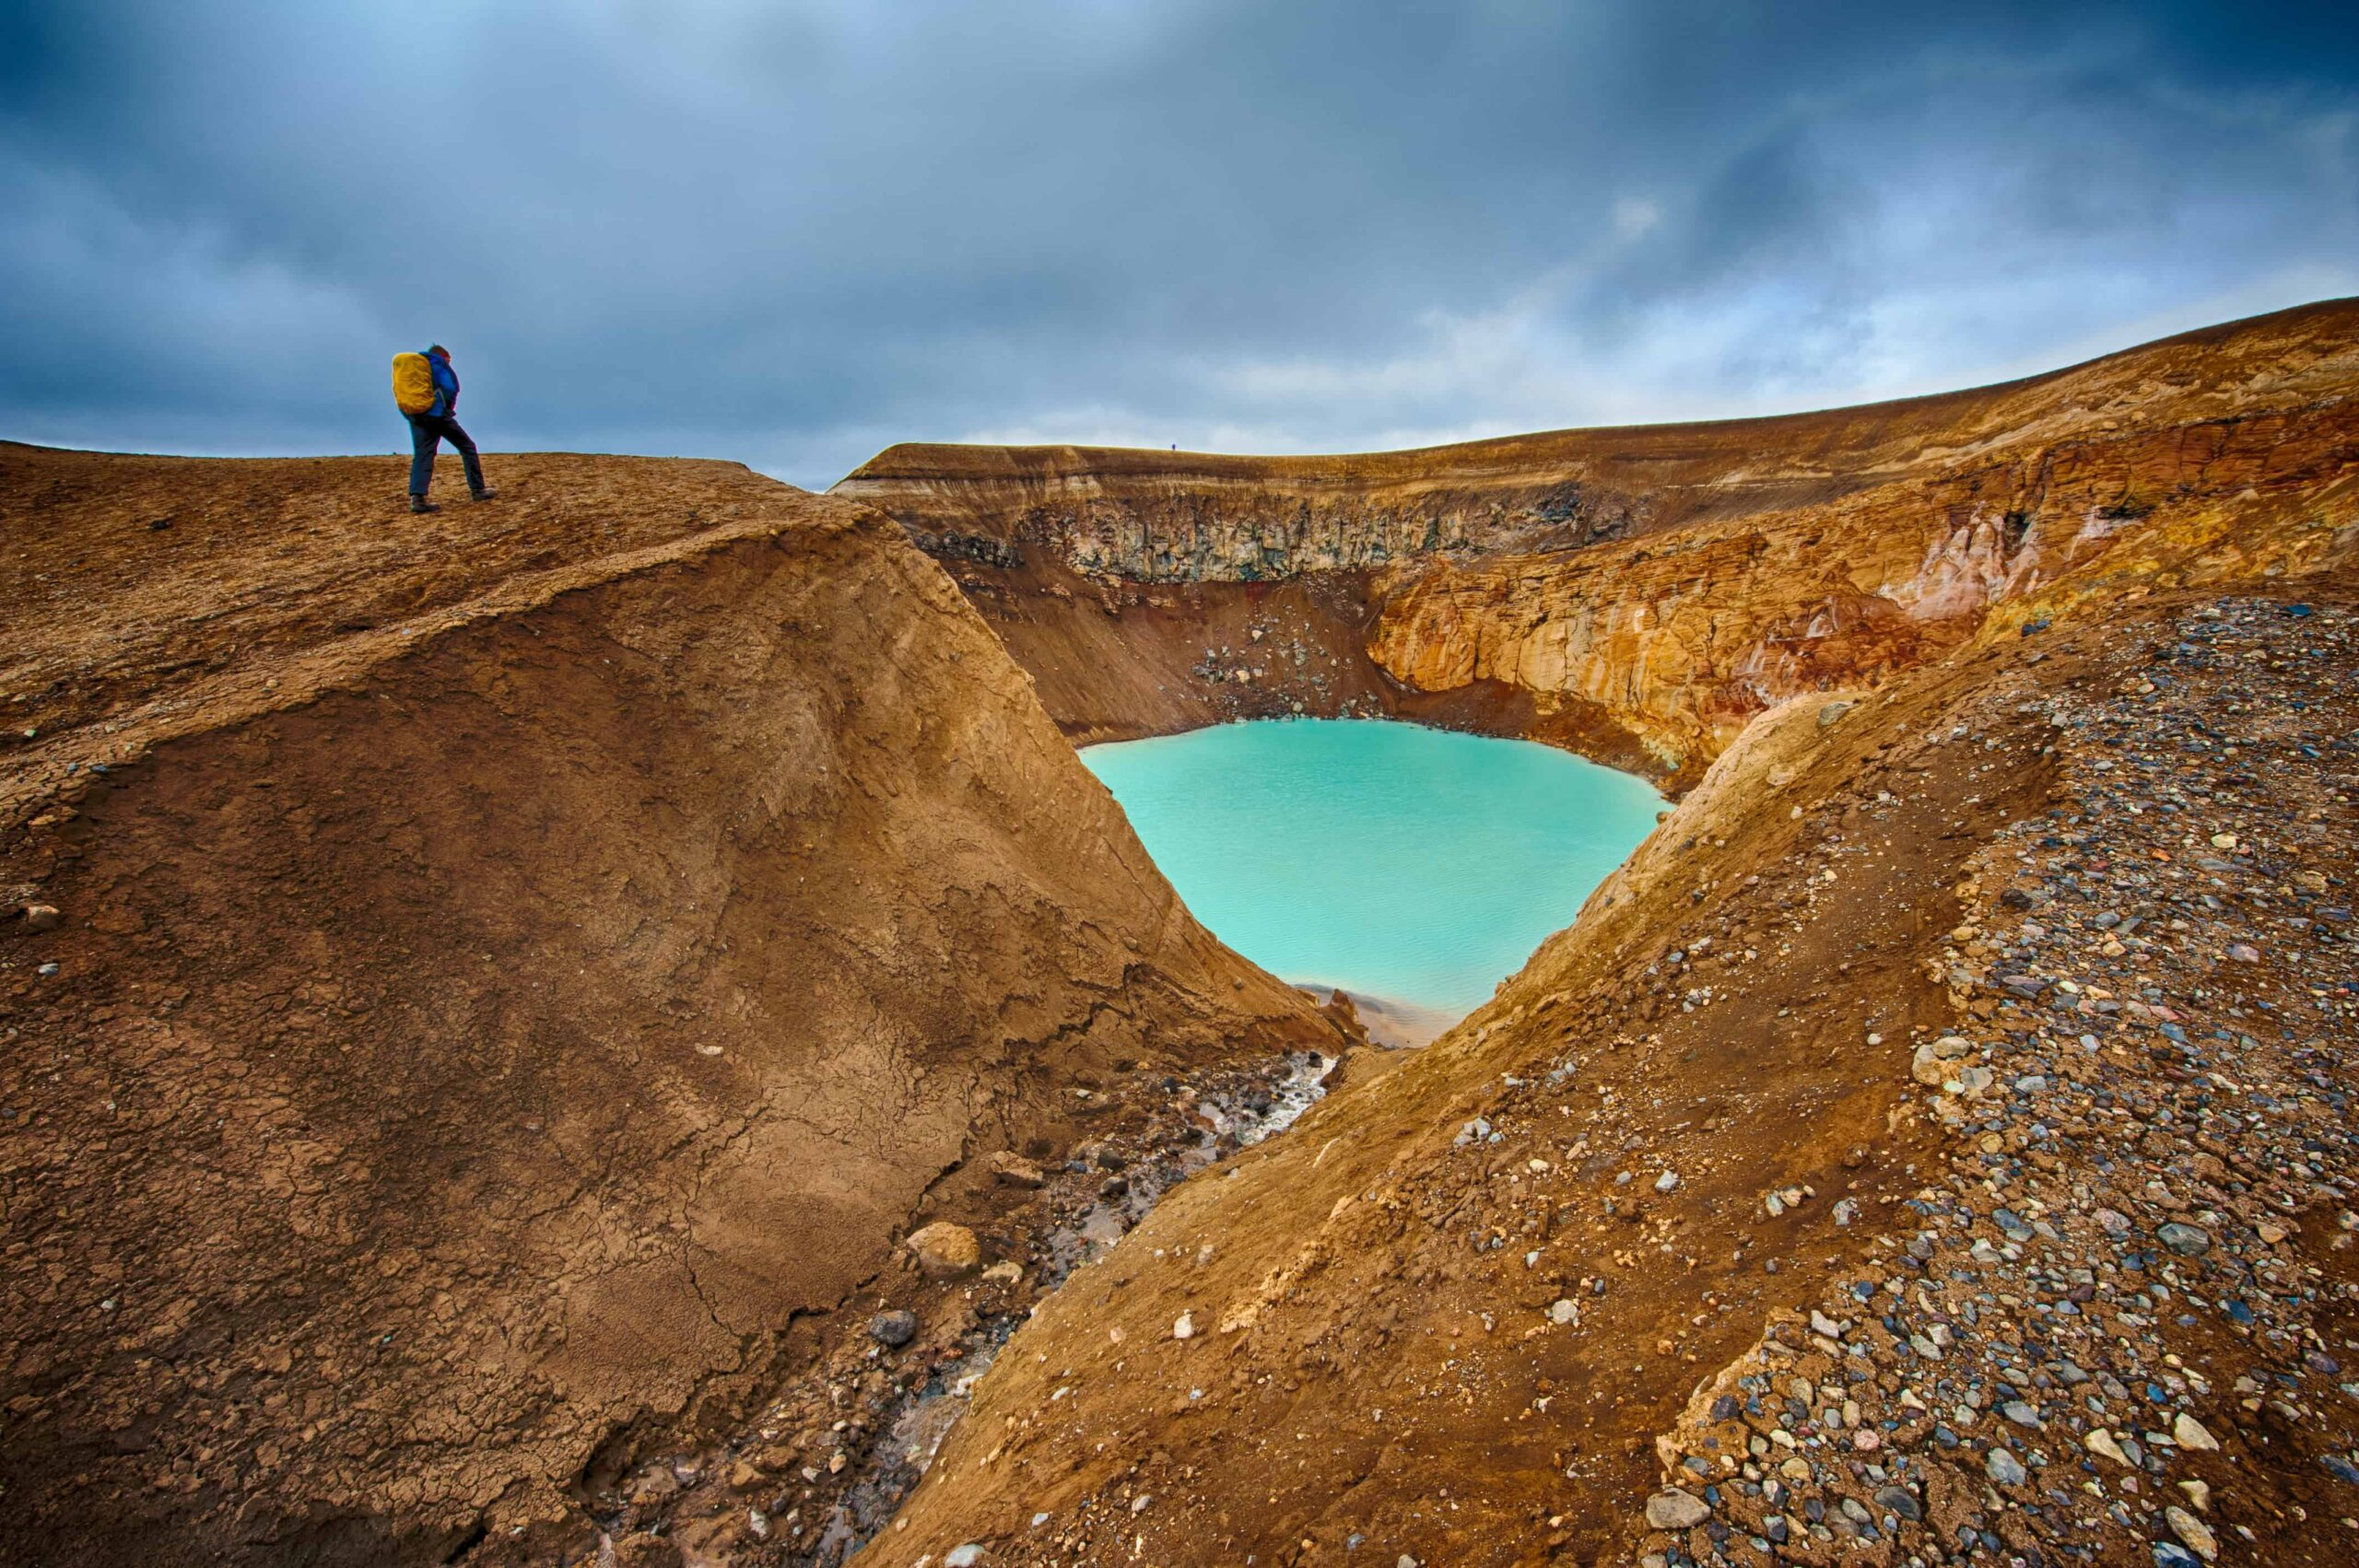 Askja Crater in the highlands of Iceland